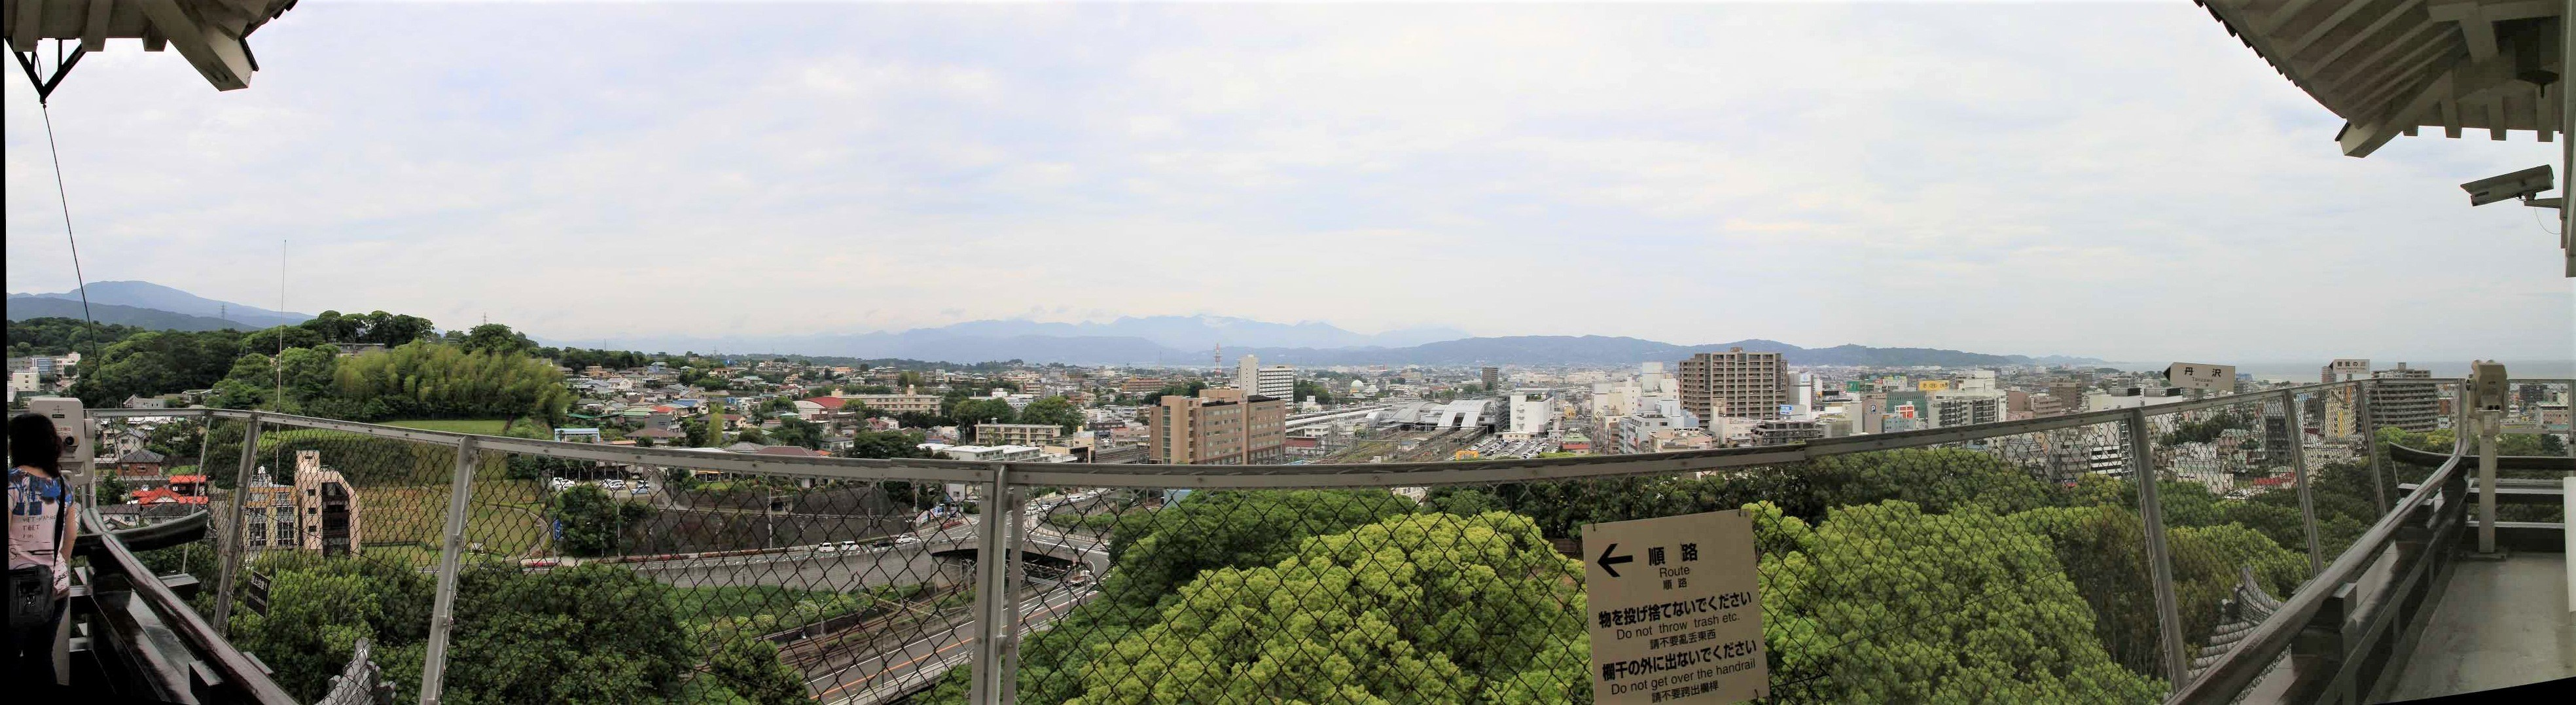 20120605IMG_2342 パノラマ写真